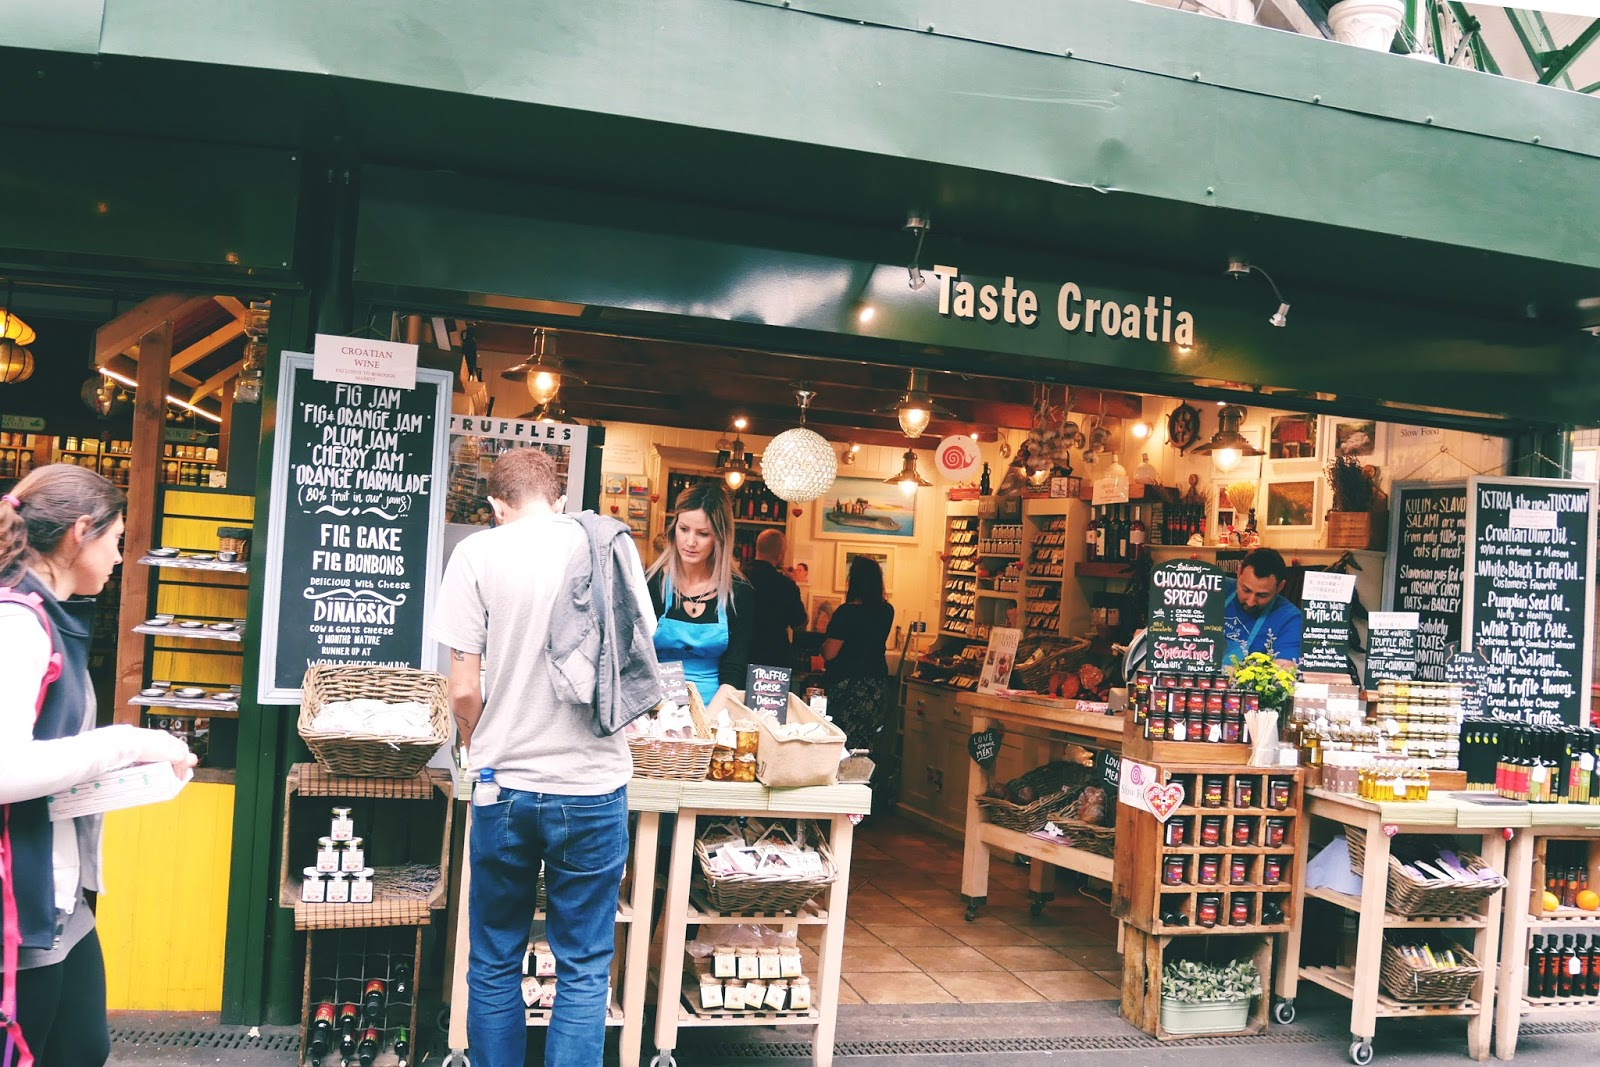 Taste Croatia, Borough Market, London